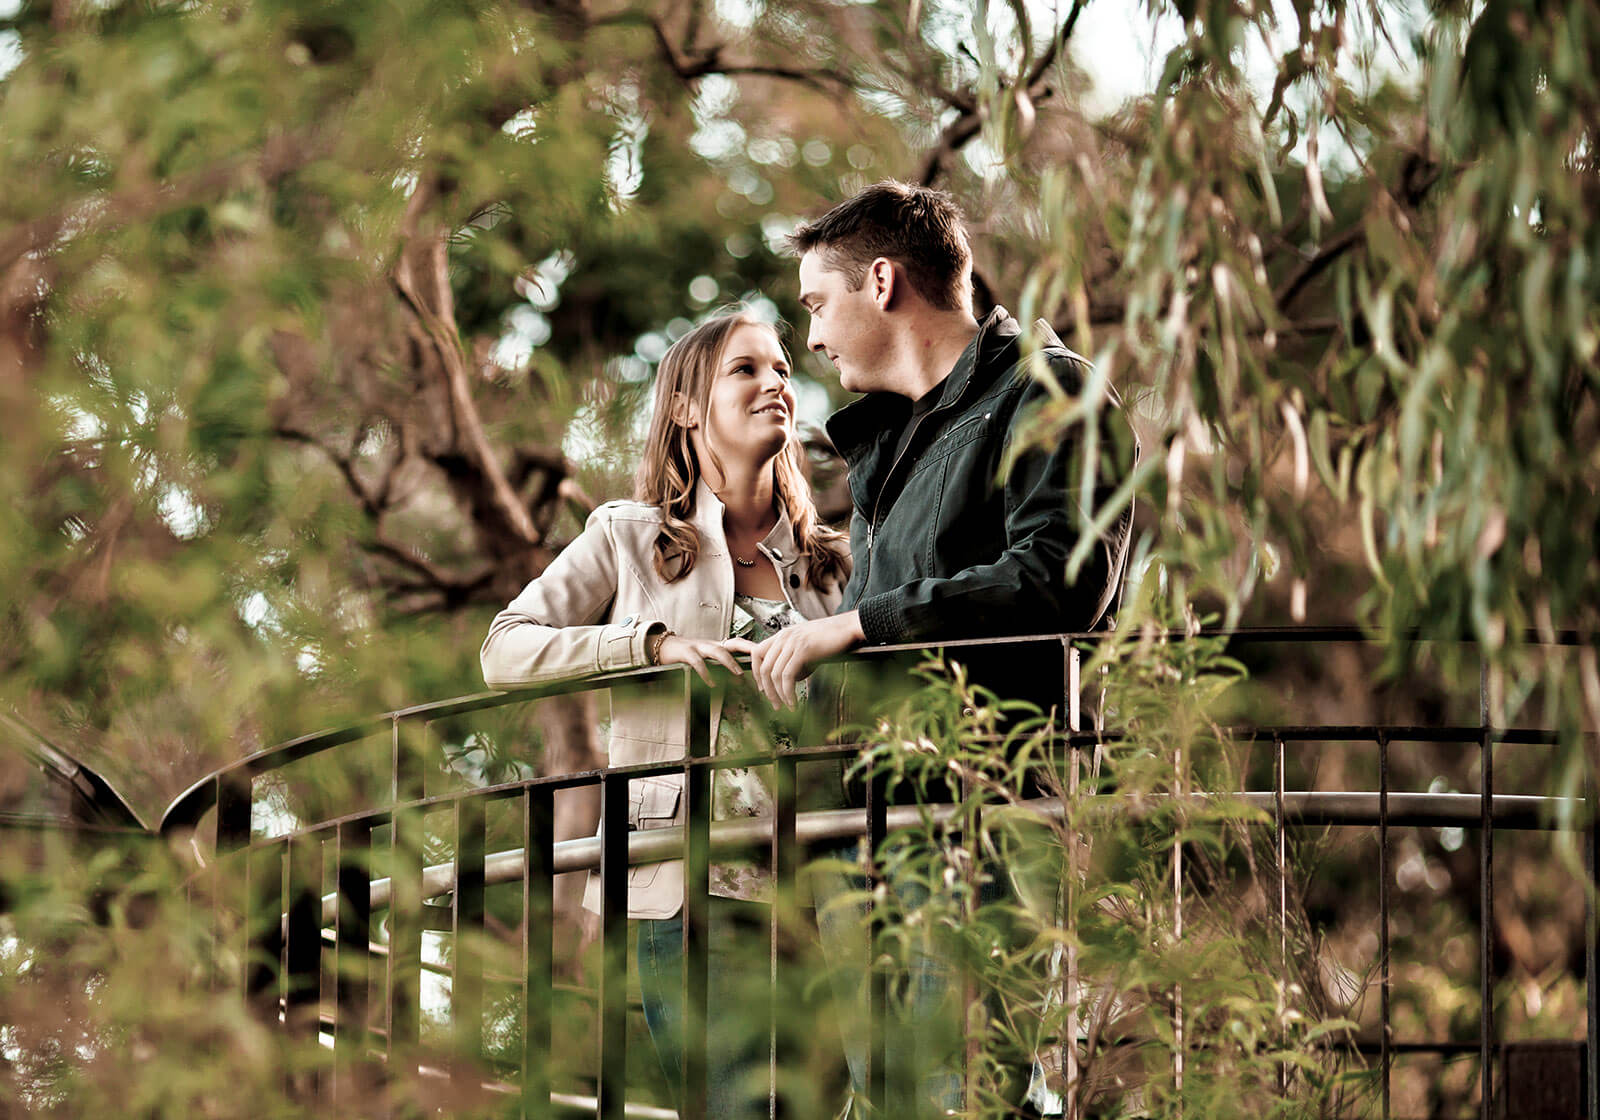 Engagement Photography at Kings Park, Perth